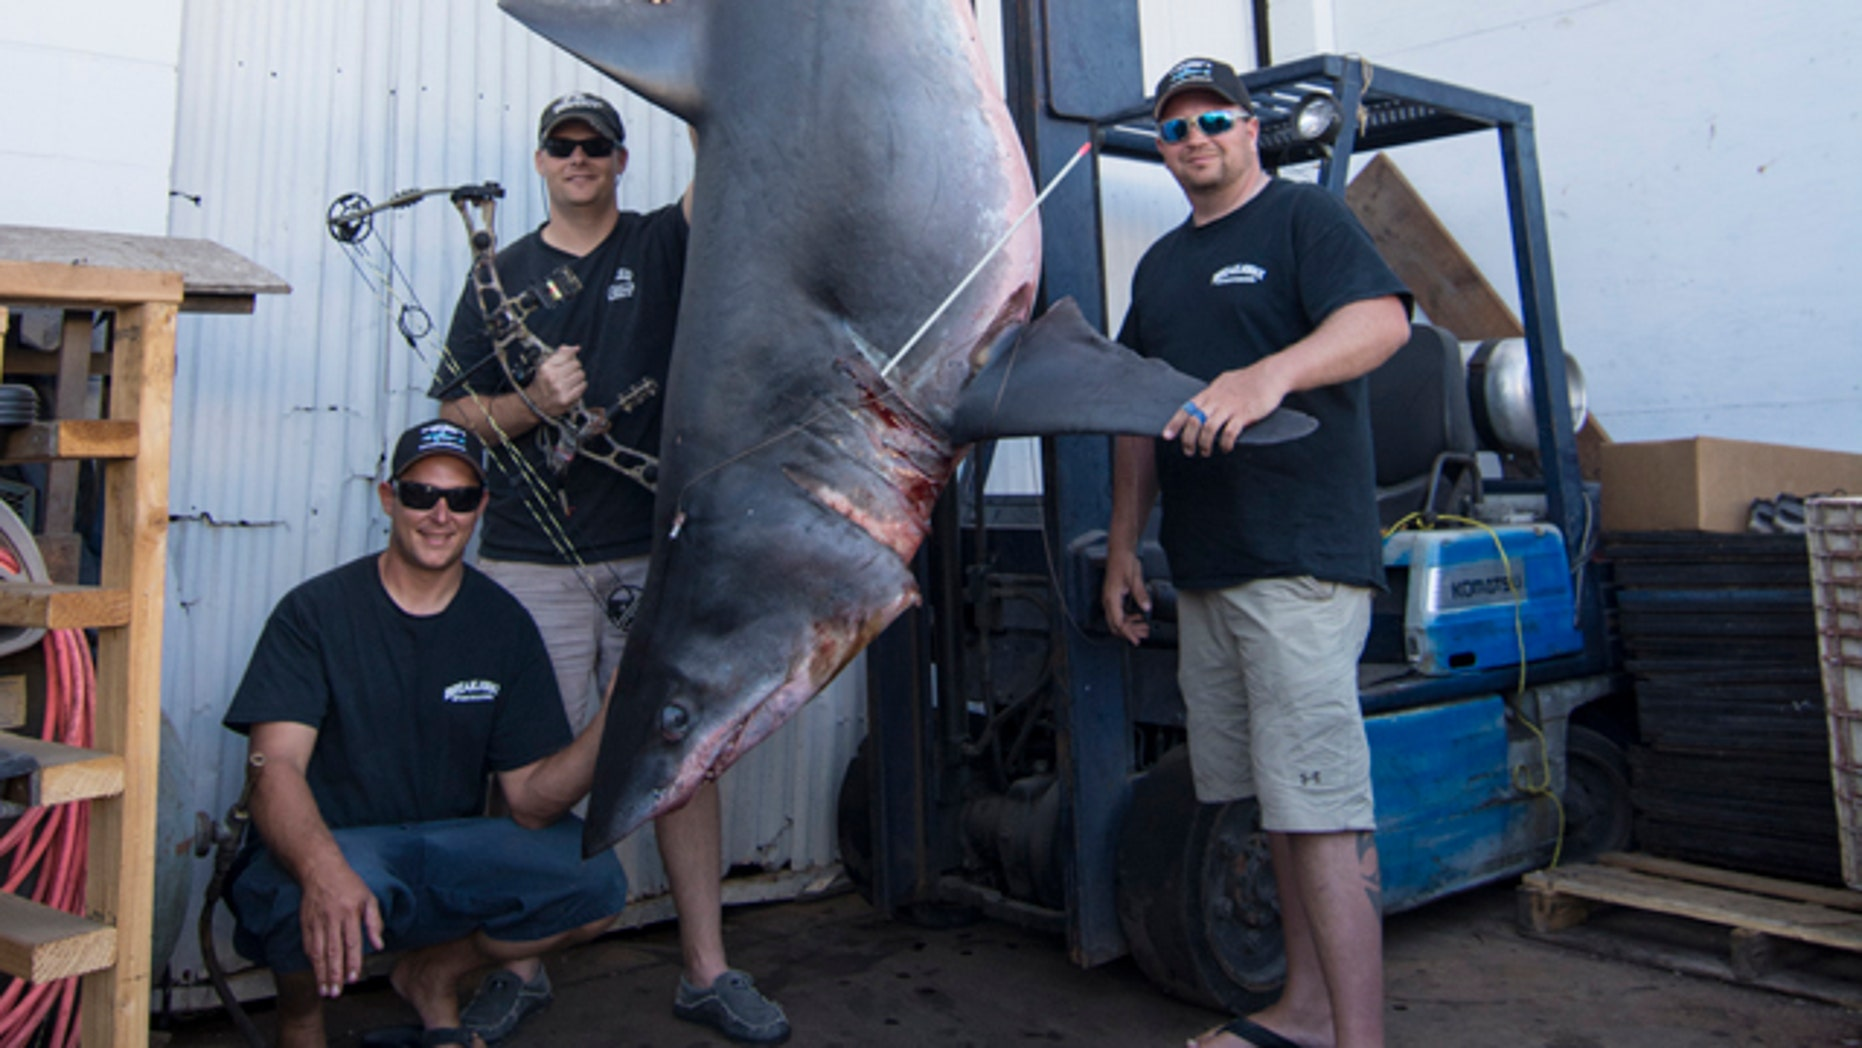 An outdoor TV host's catch of a 809.5-pound Mako shark in August off the coast of southern California was deemed the largest ever caught using a compound bow.